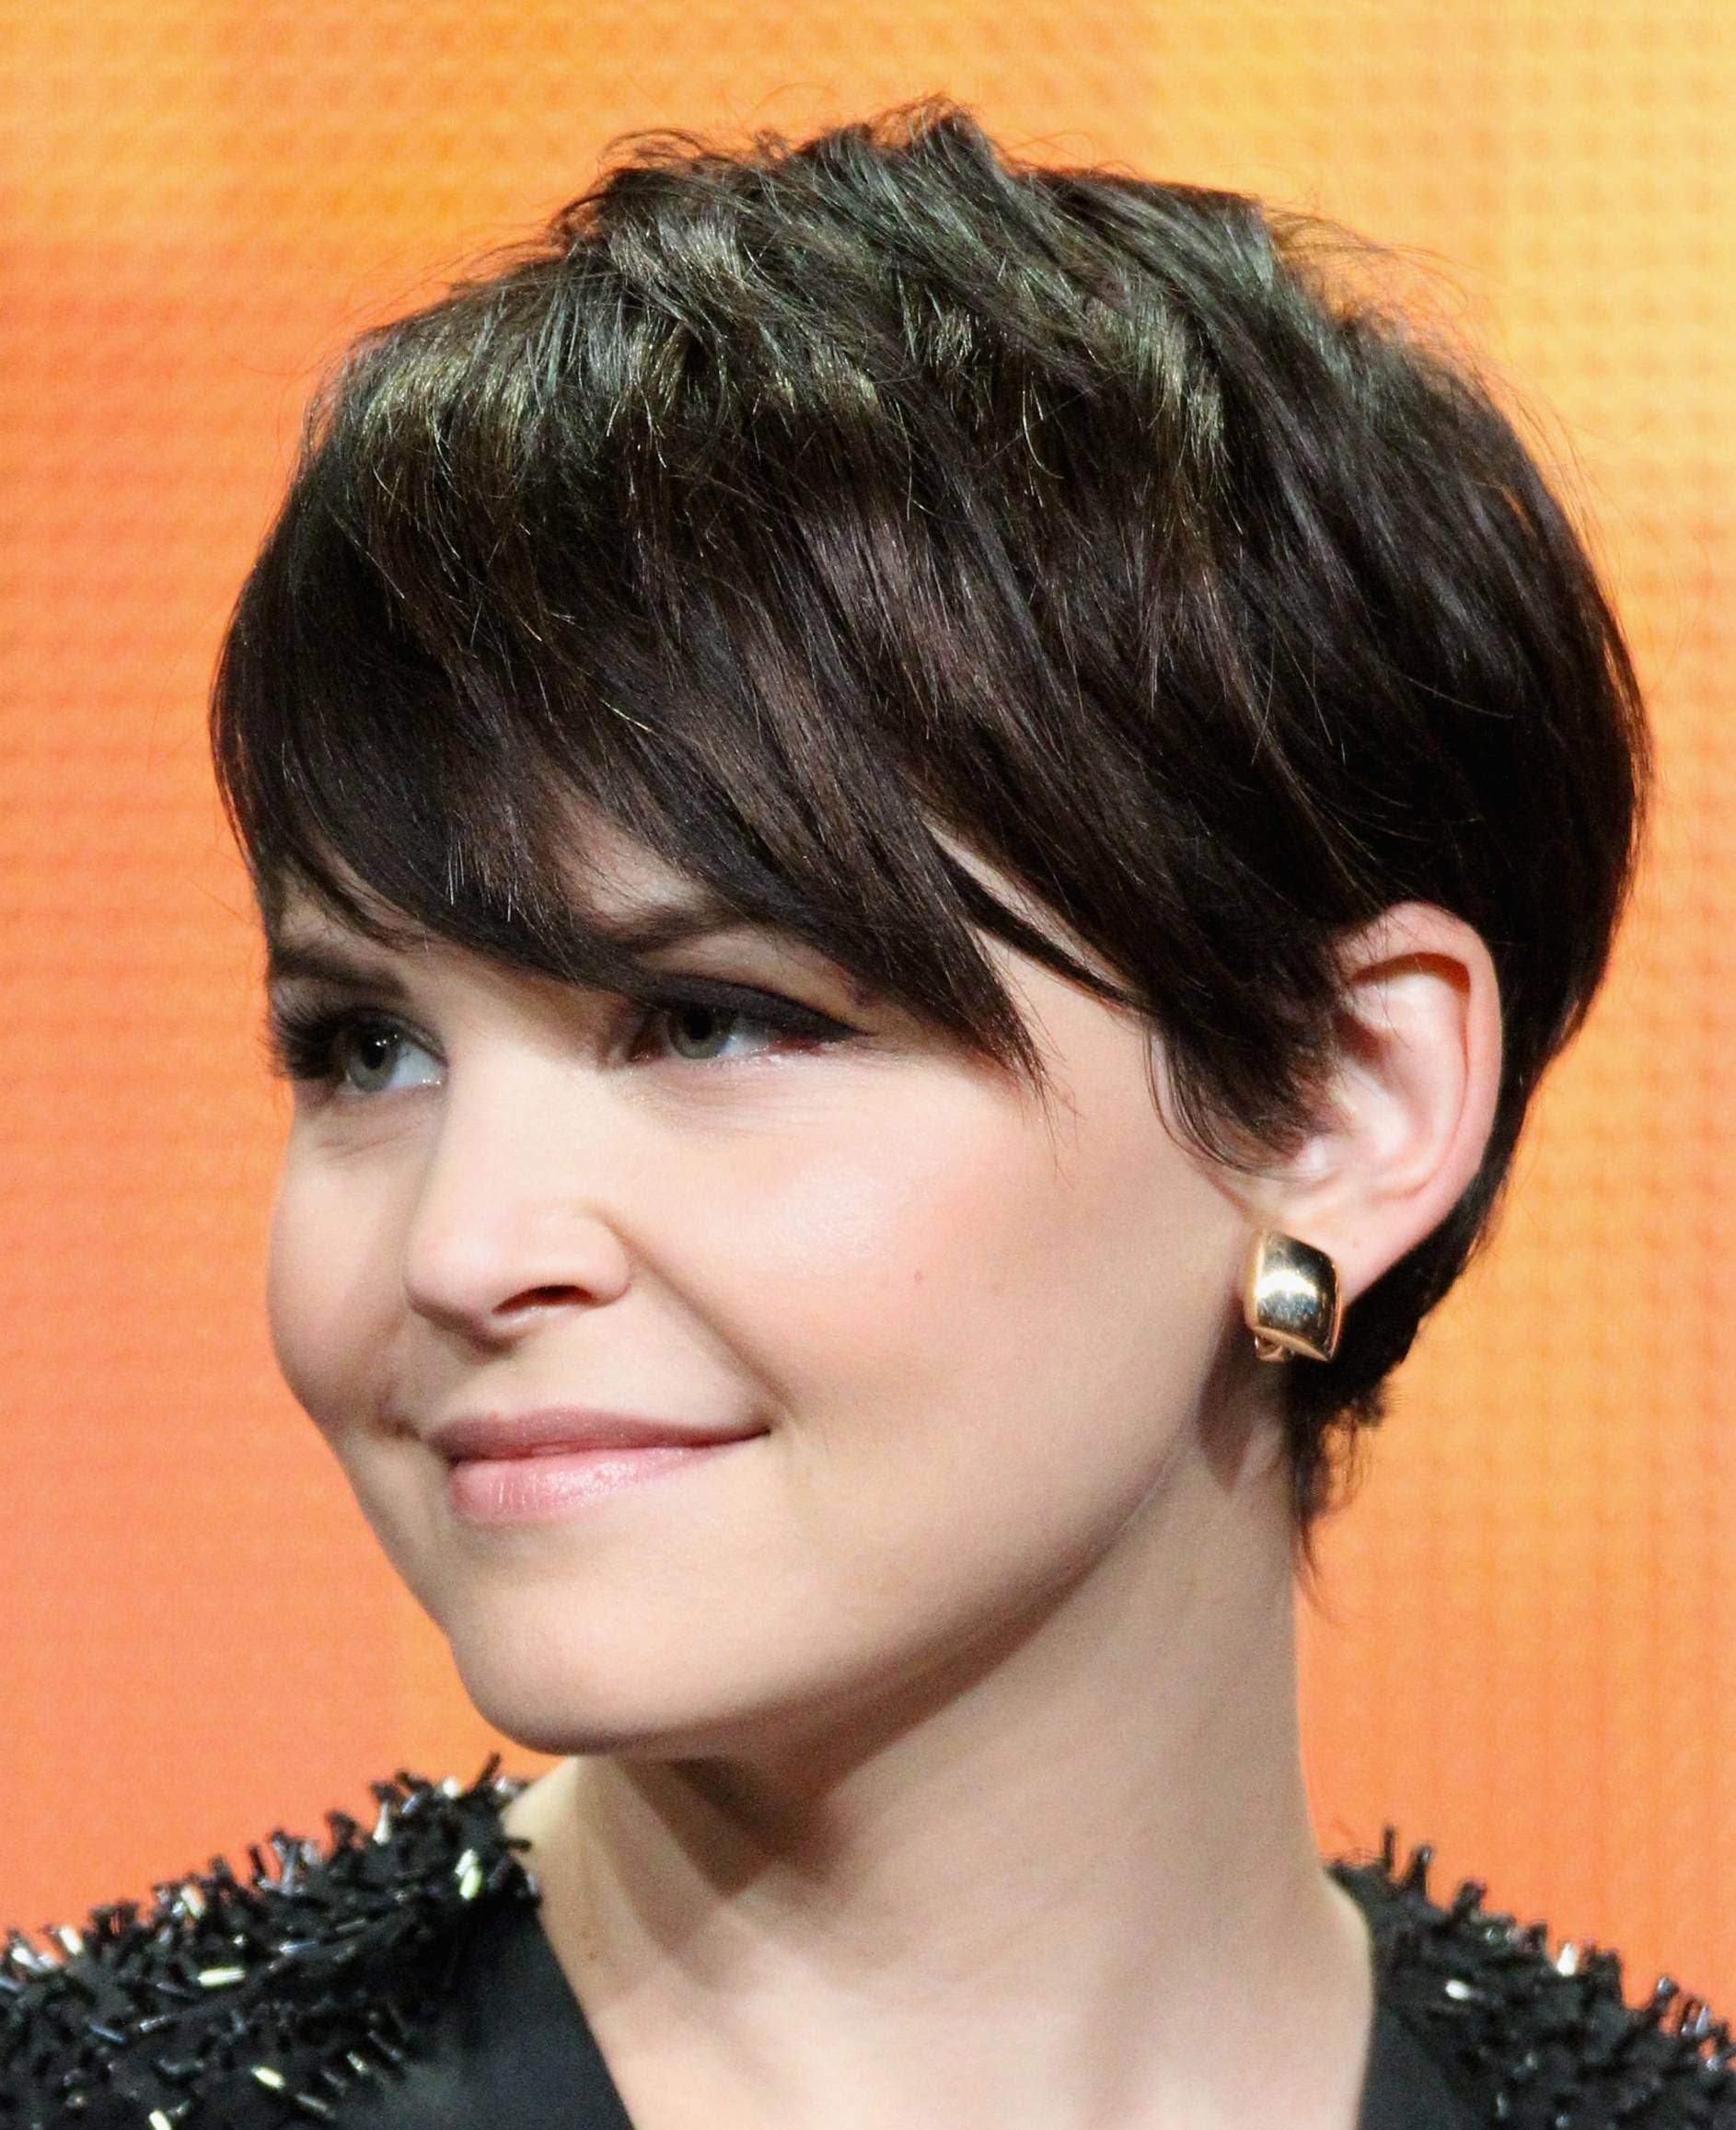 pixie haircut styles pixie haircut the ultimate pixie cuts guide 1077